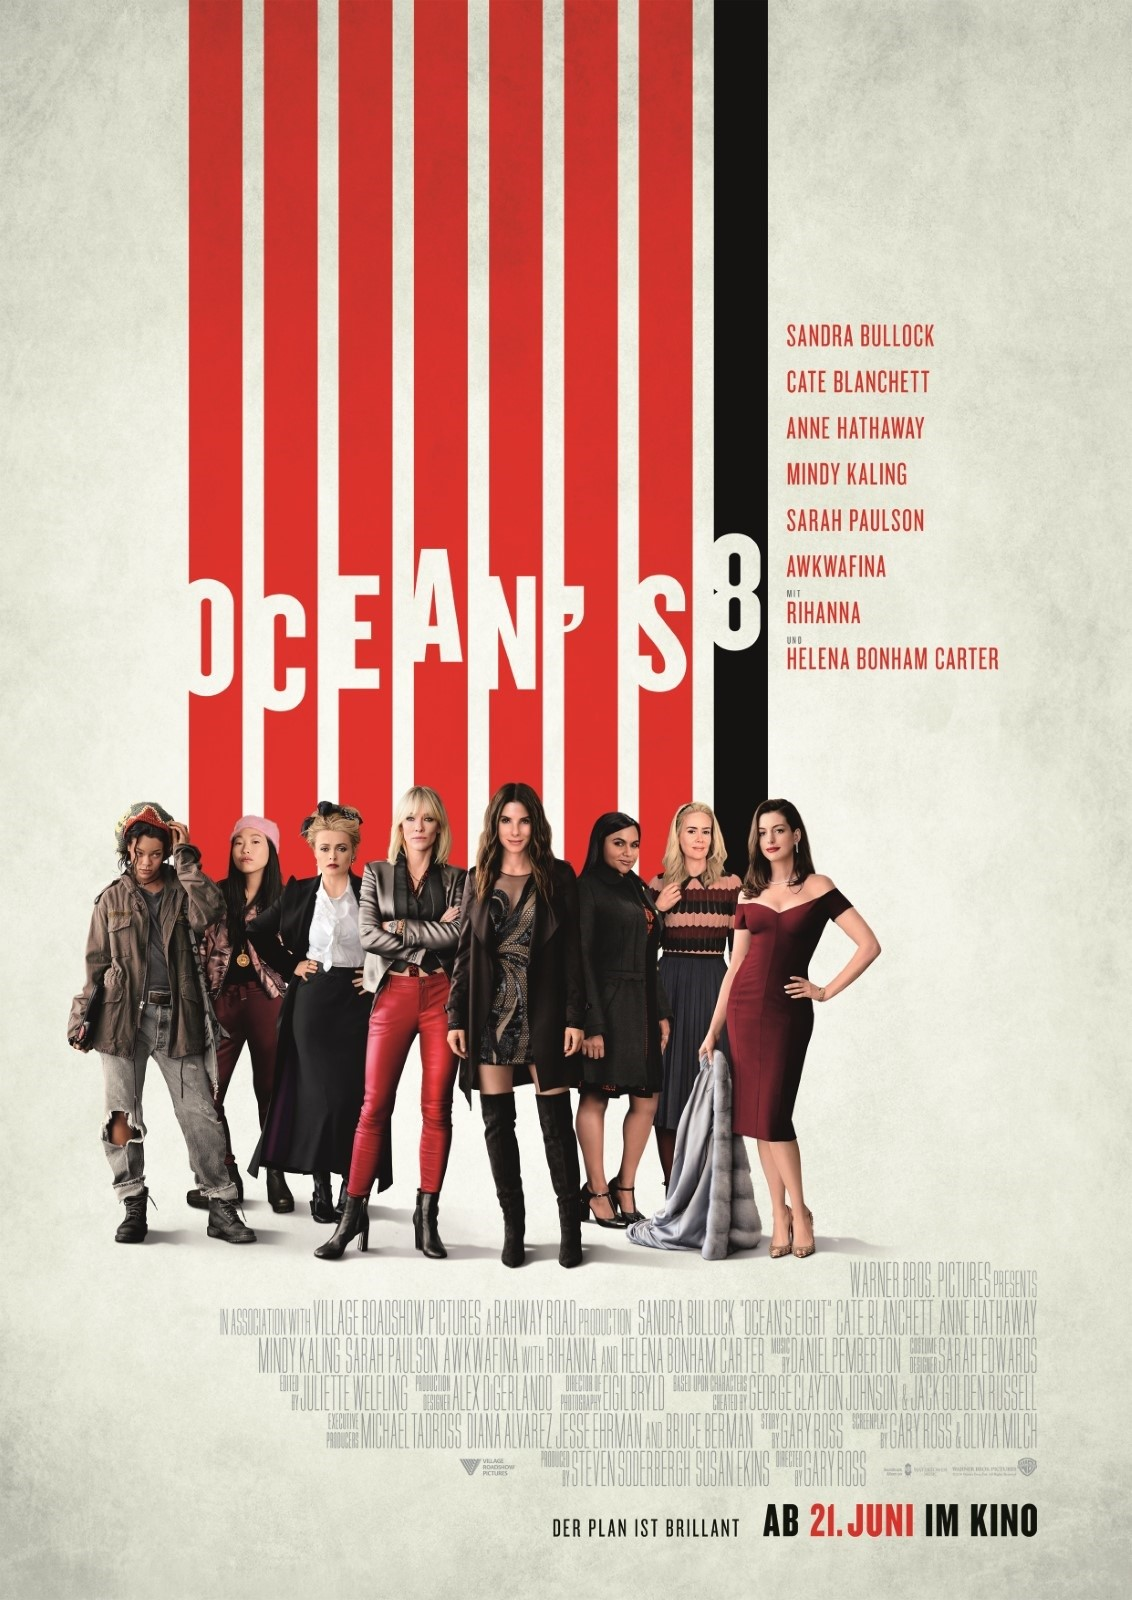 Anschauen Ocean's 8 film in Deutsch mit Untertiteln in FULL HD